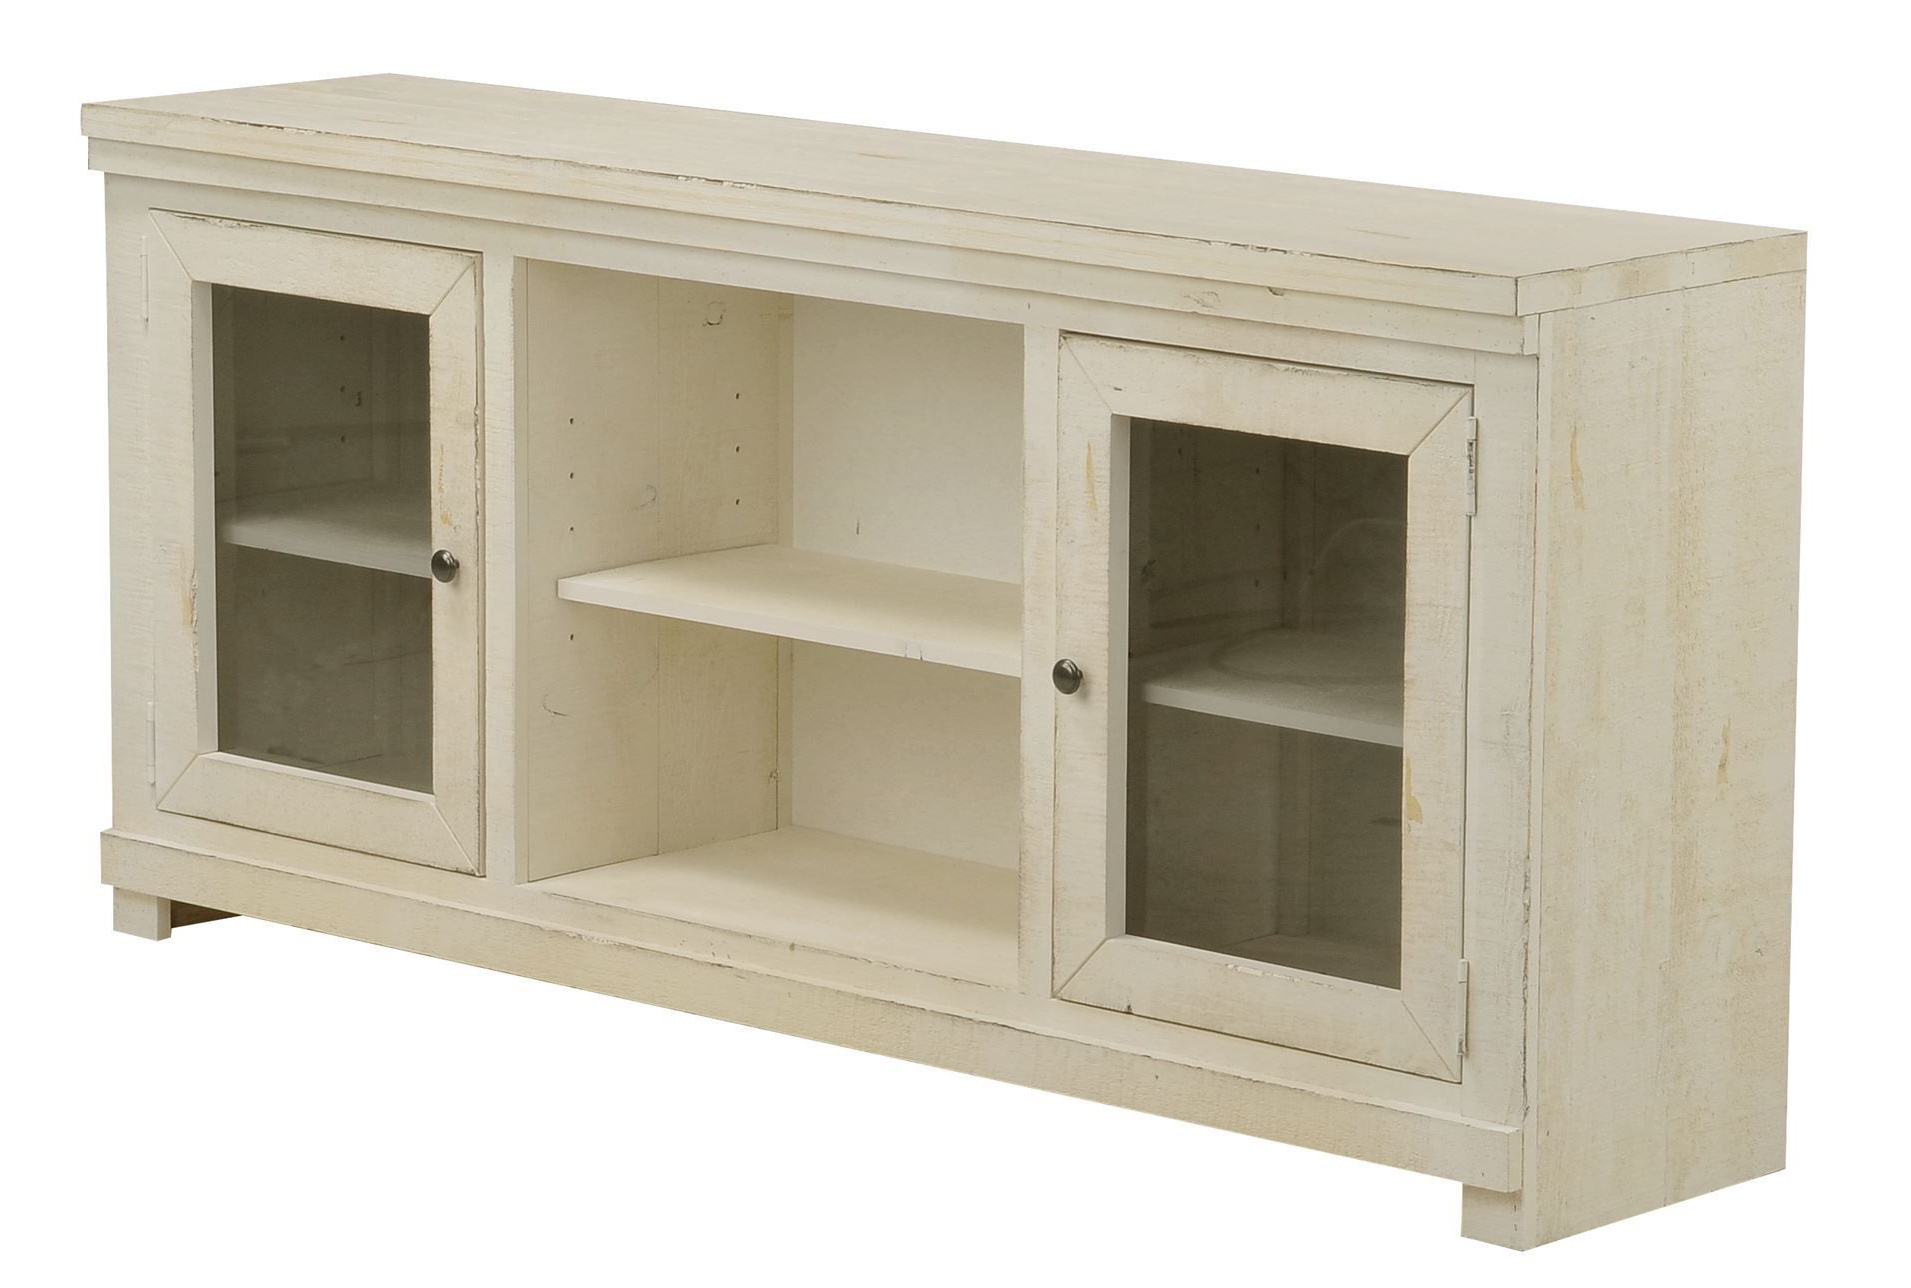 Sinclair White 68 Inch Tv Stand | For The Home | Living Room Designs Throughout Sinclair White 68 Inch Tv Stands (Gallery 1 of 20)